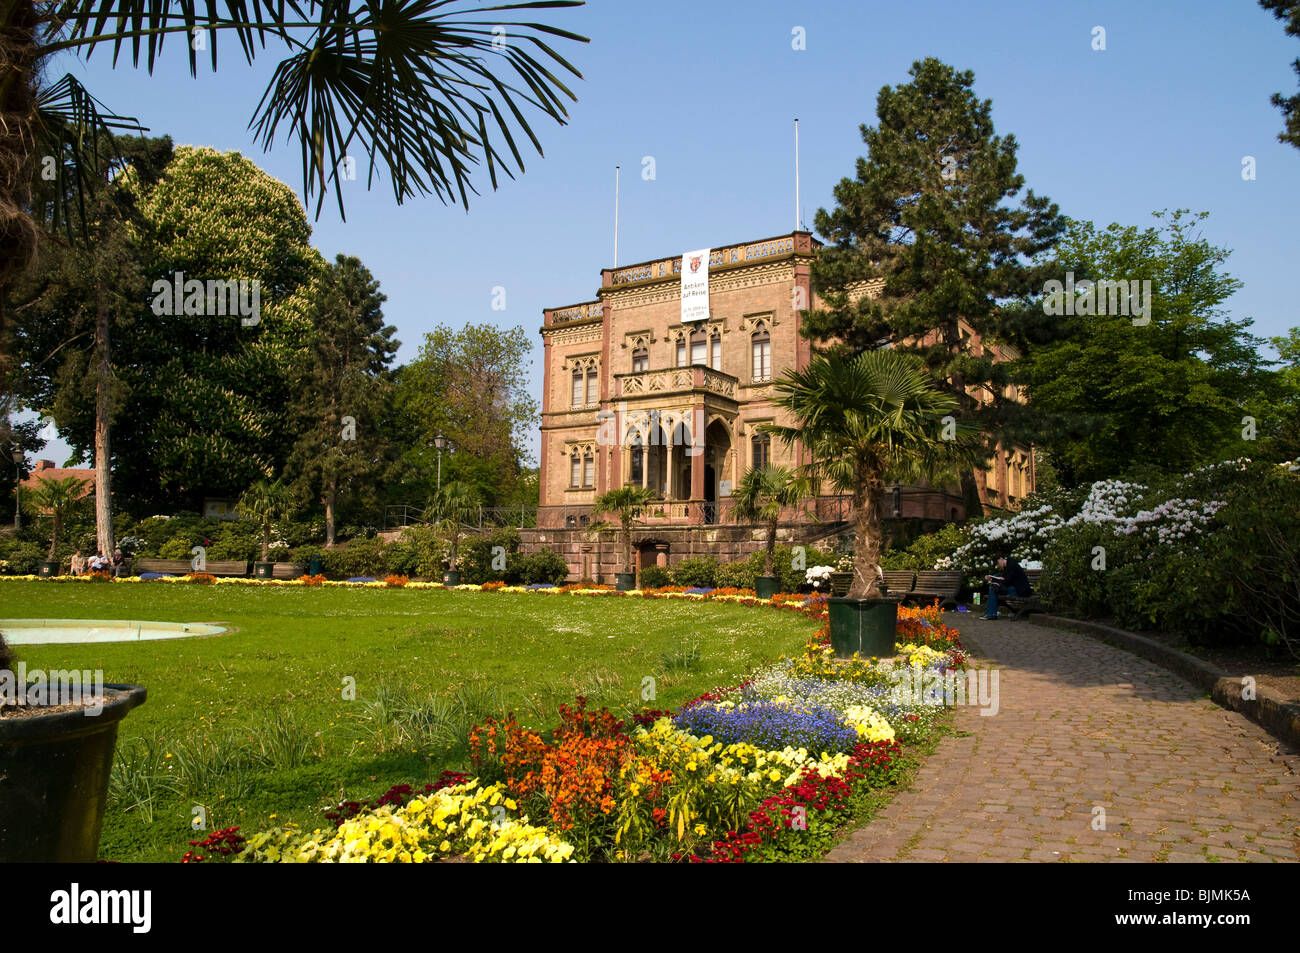 Colombischloessle House in Colombipark, Freiburg im Breisgau, Baden-Wuerttemberg, Germany, Europe Stock Photo